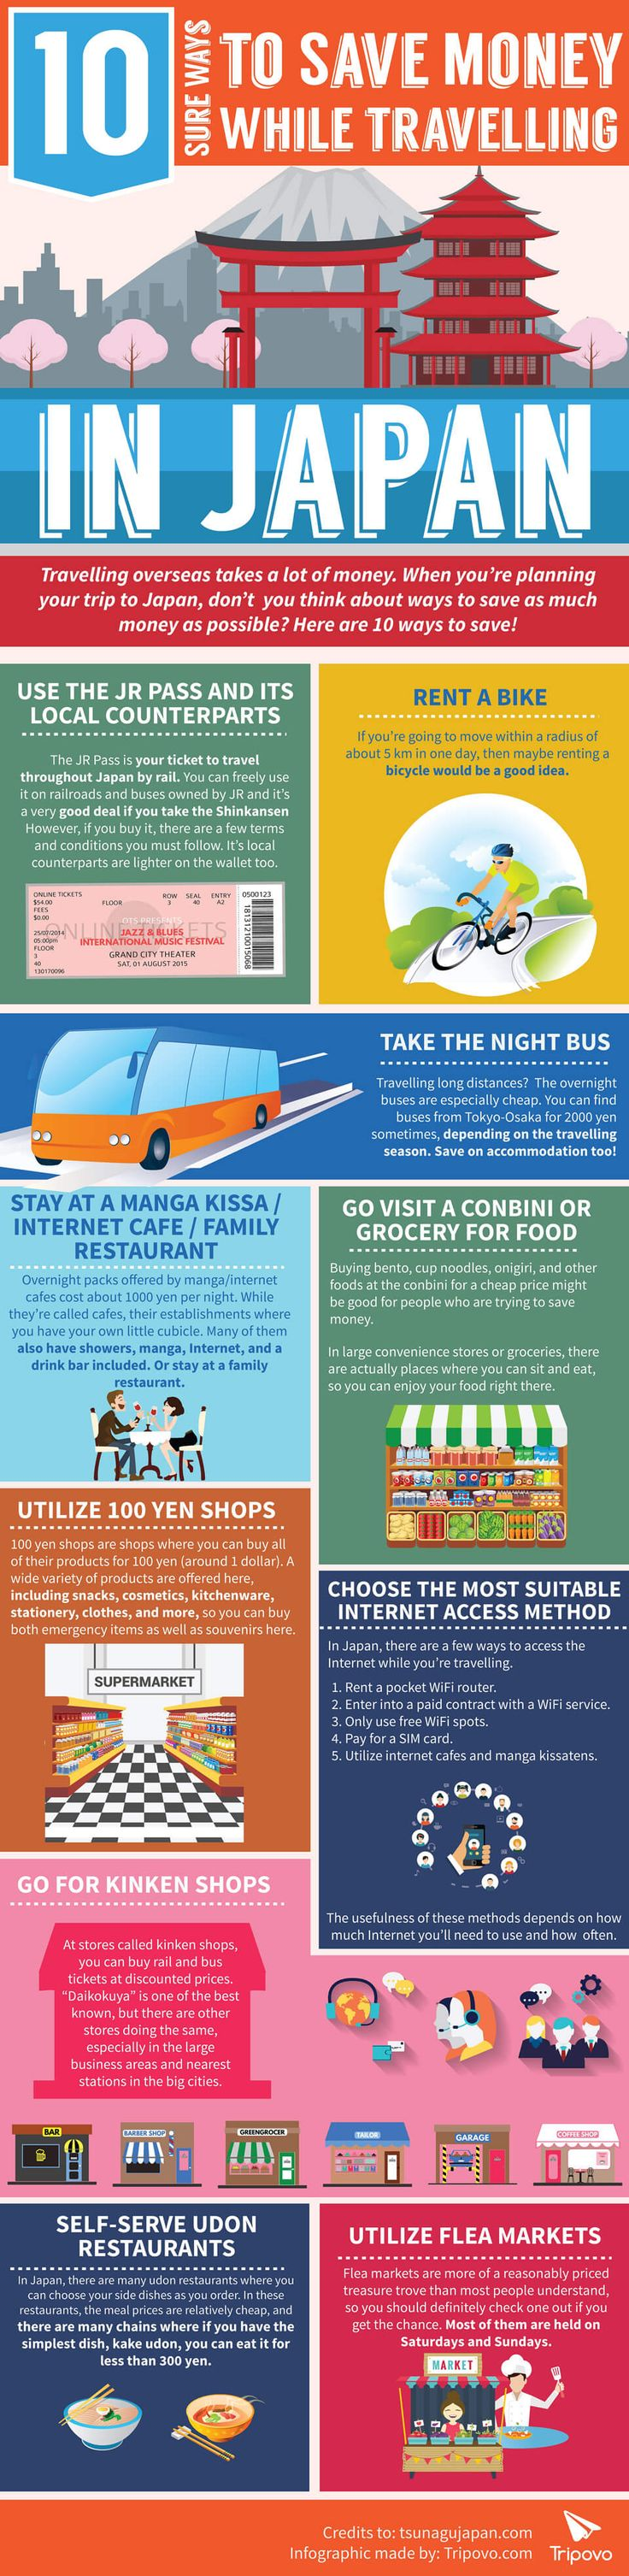 10 best ways to save money while on a trip to japan infographic